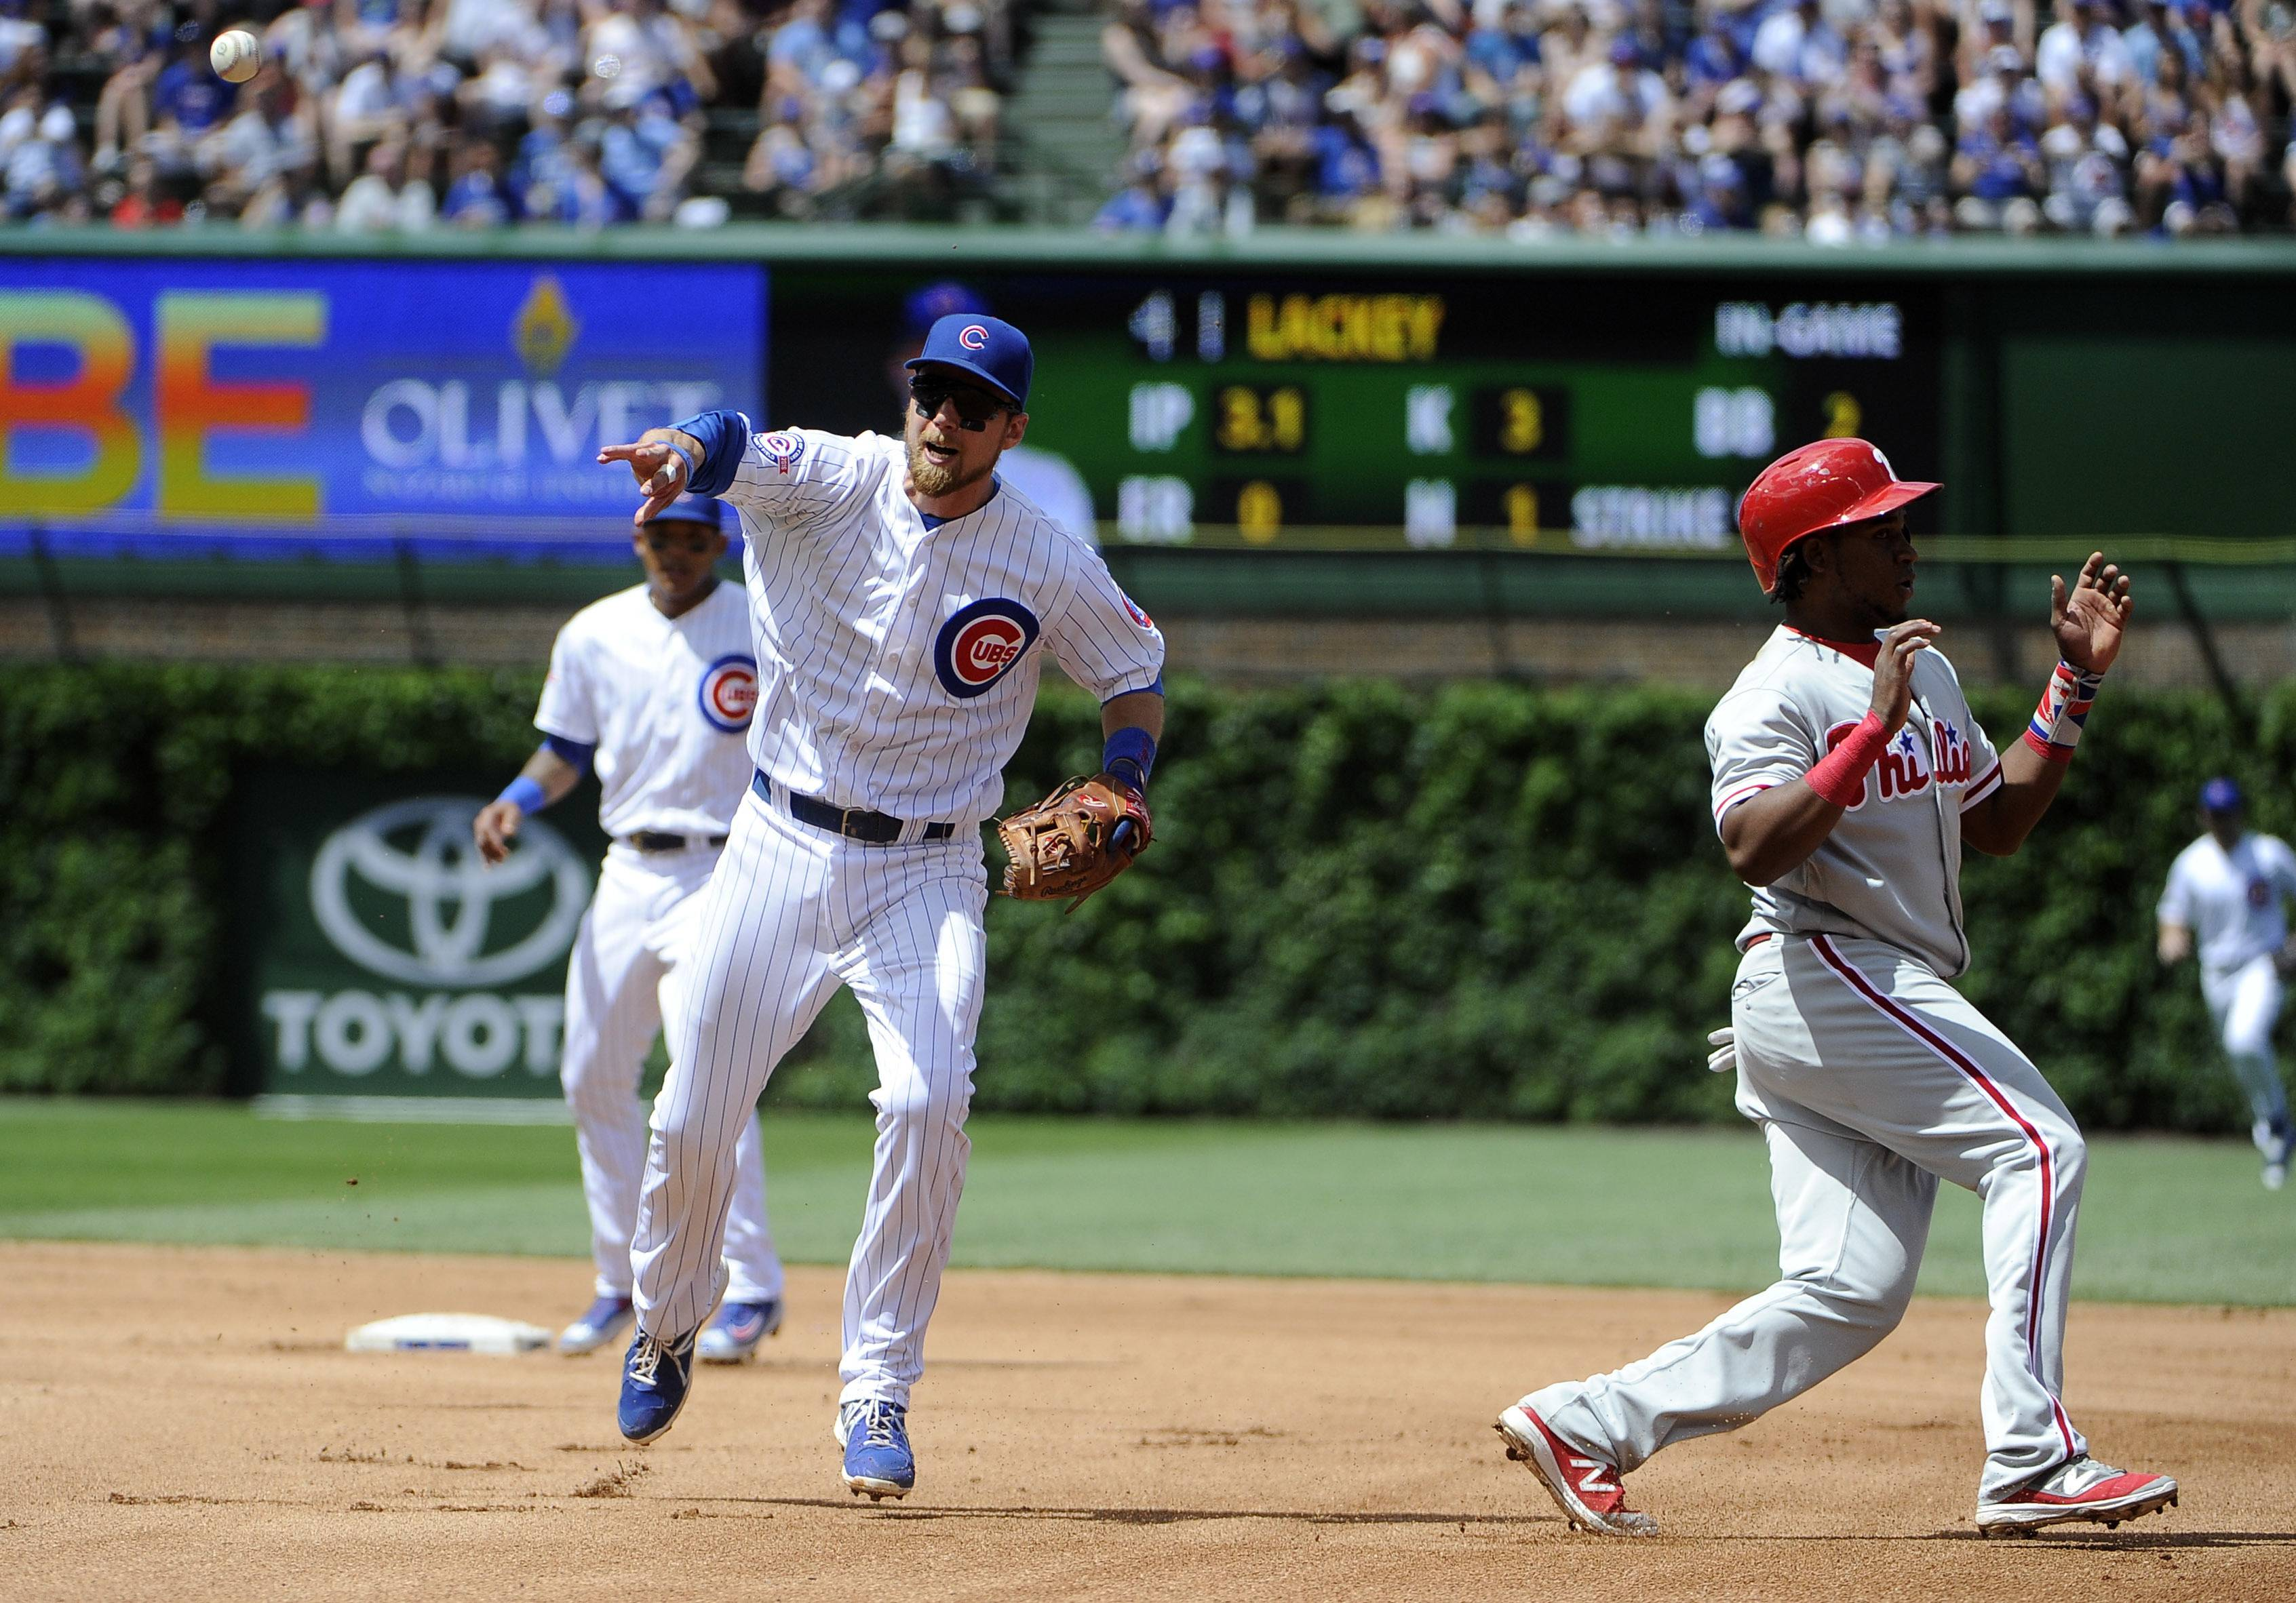 Chicago Cubs second baseman Ben Zobrist, front left, throws to first base to get Philadelphia Phillies' Tommy Joseph in a double play as Phillies' Maikel Franco, right, runs out of the base line during the fourth inning of a baseball game, Sunday, May 29, 2016, in Chicago.